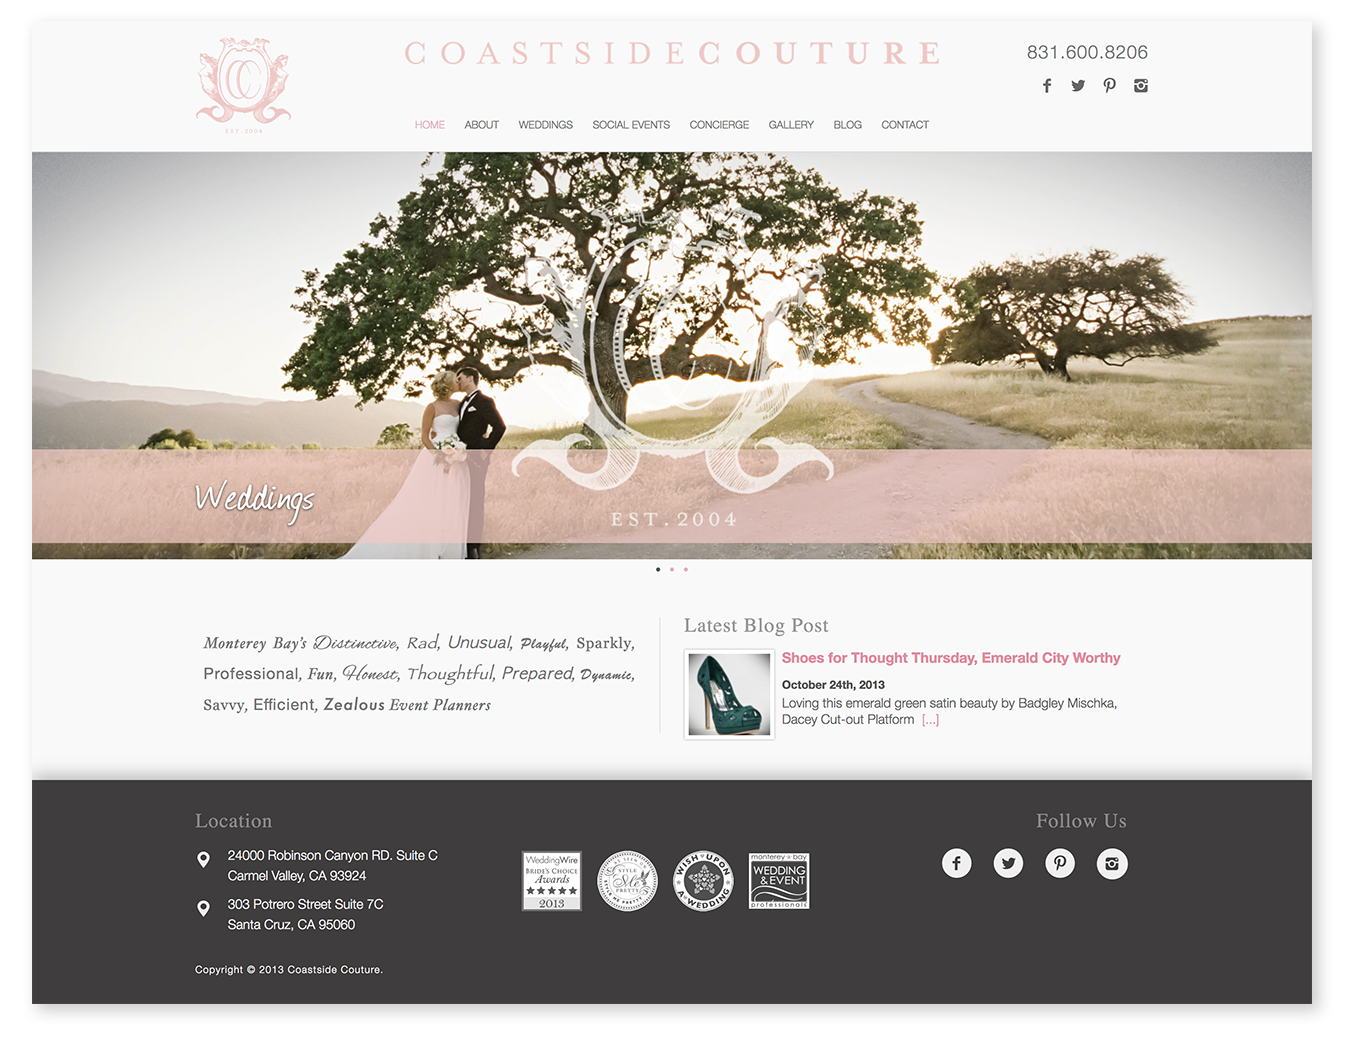 Large site image for Coastside Couture